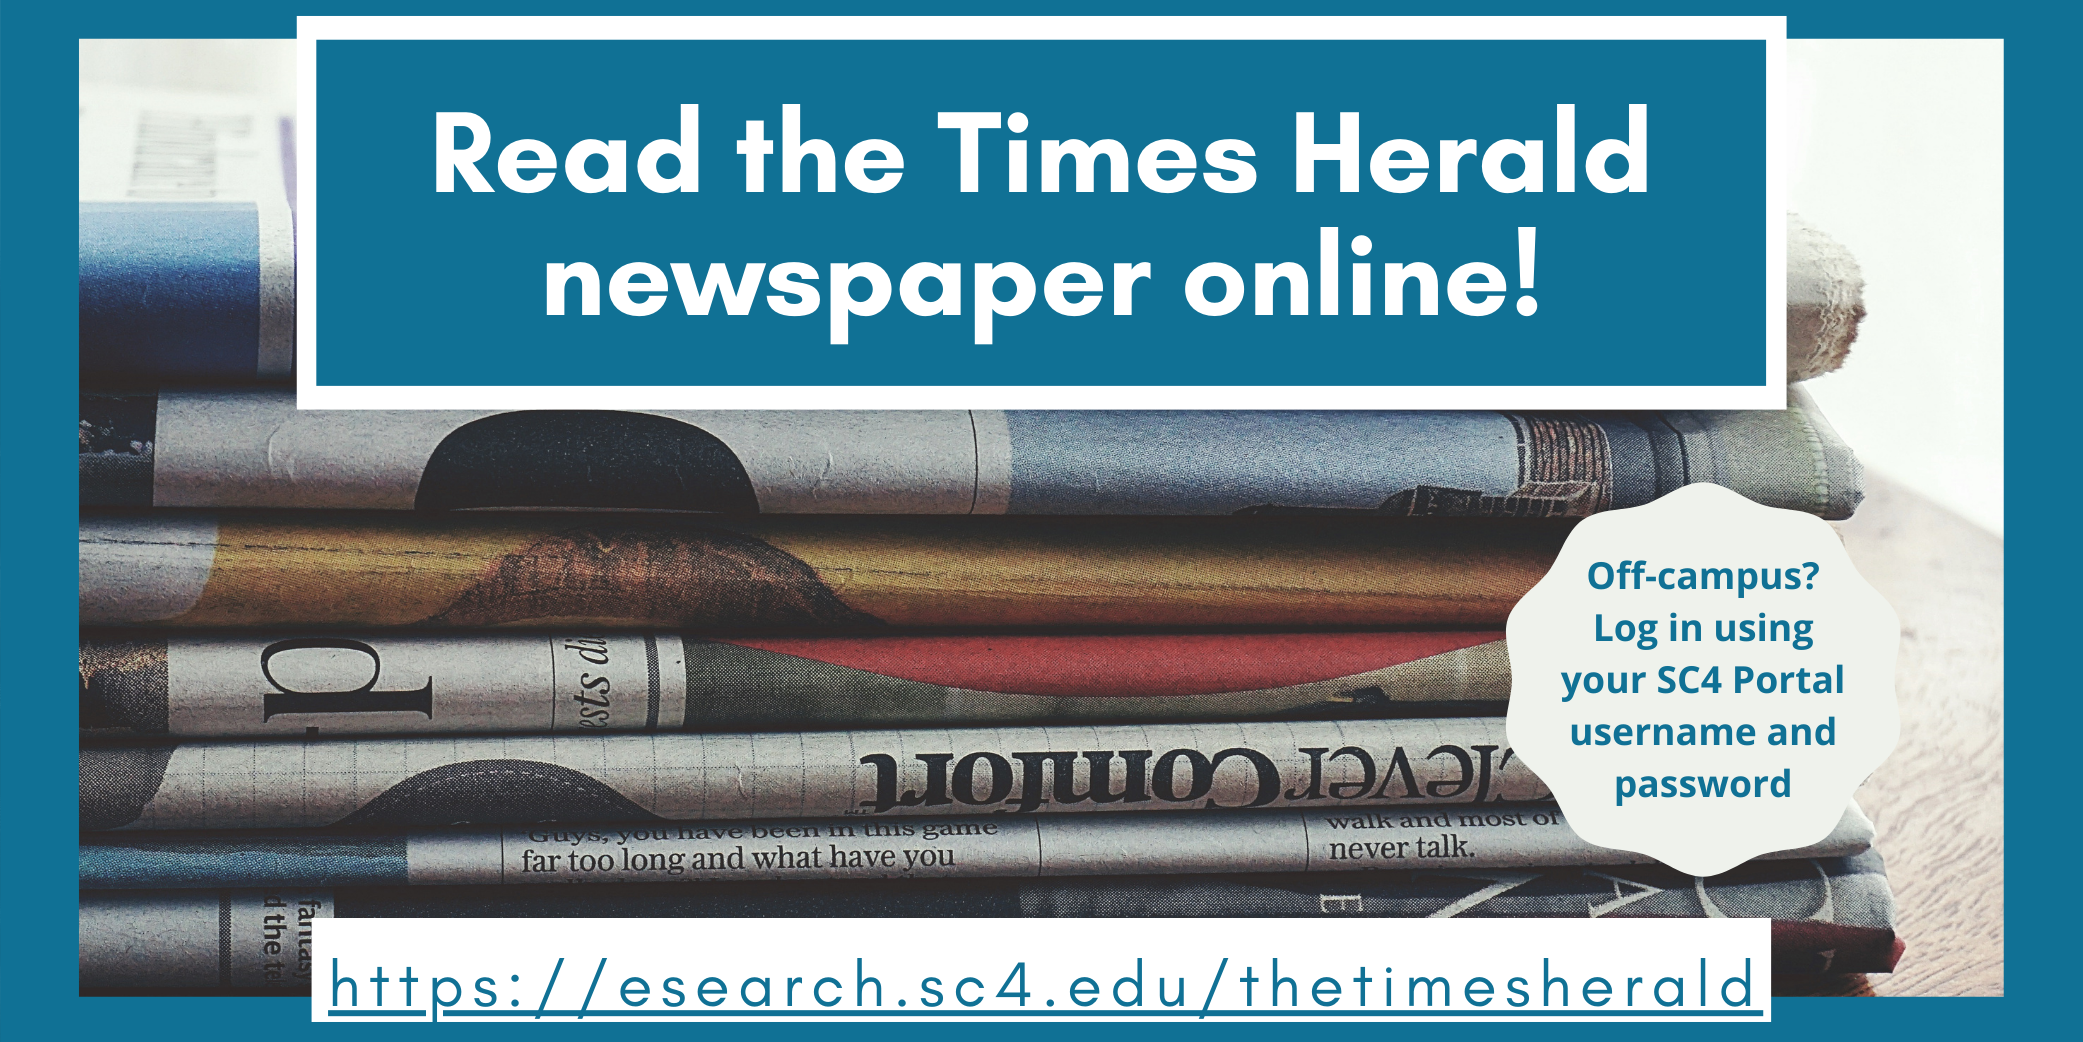 read the times herald newspaper online